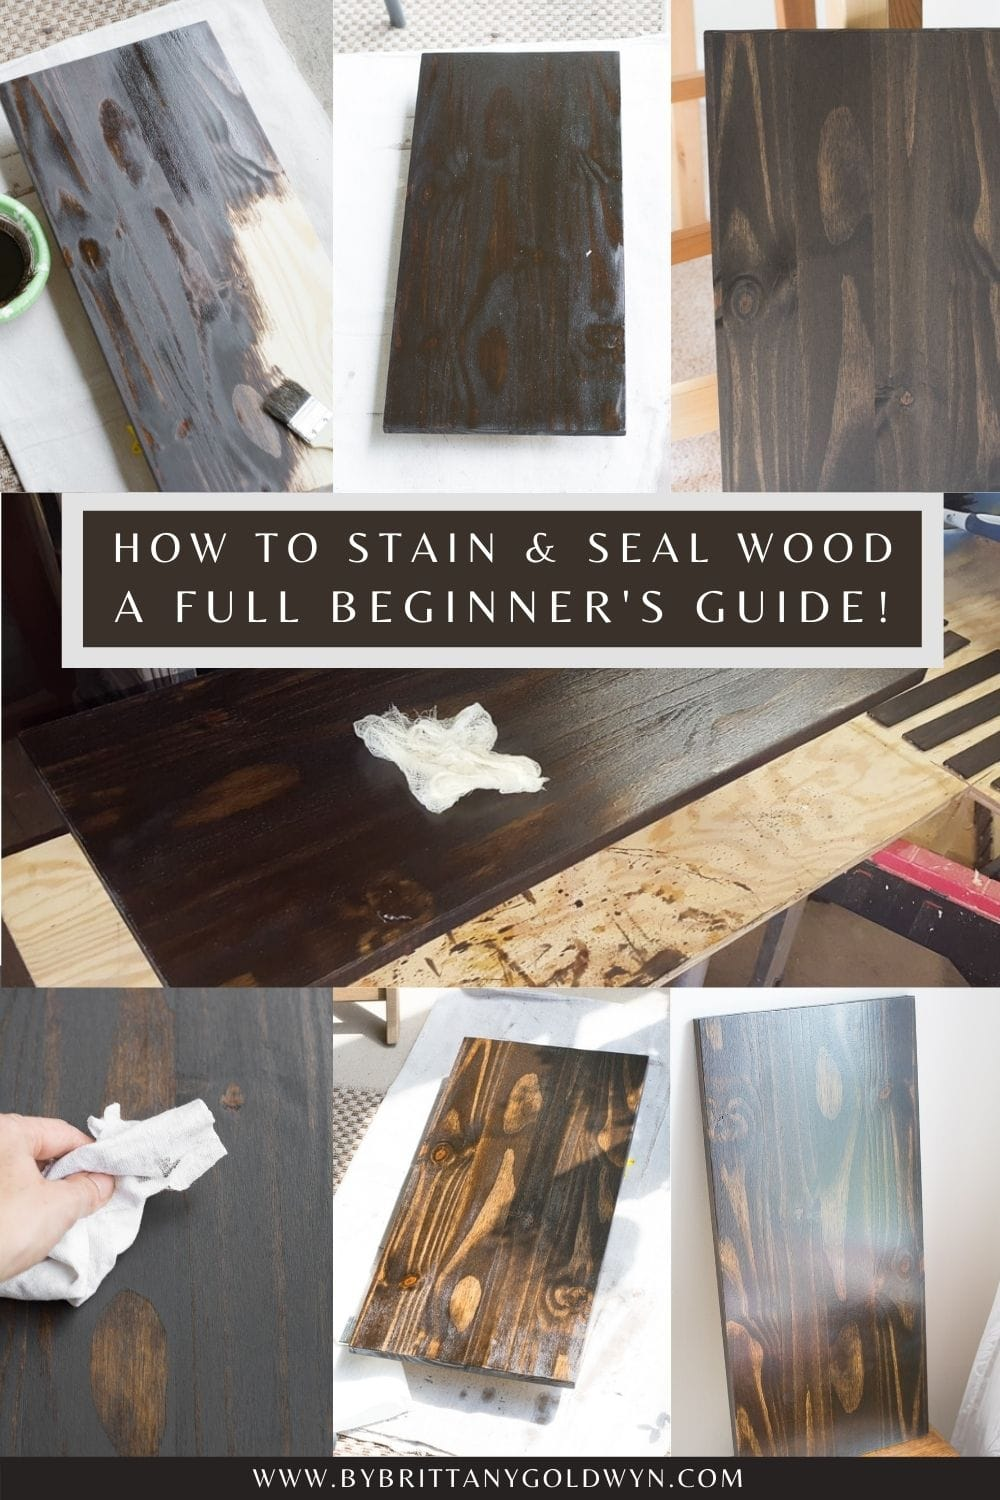 pinnable graphic with collage of images and text overlay about how to stain and seal wood